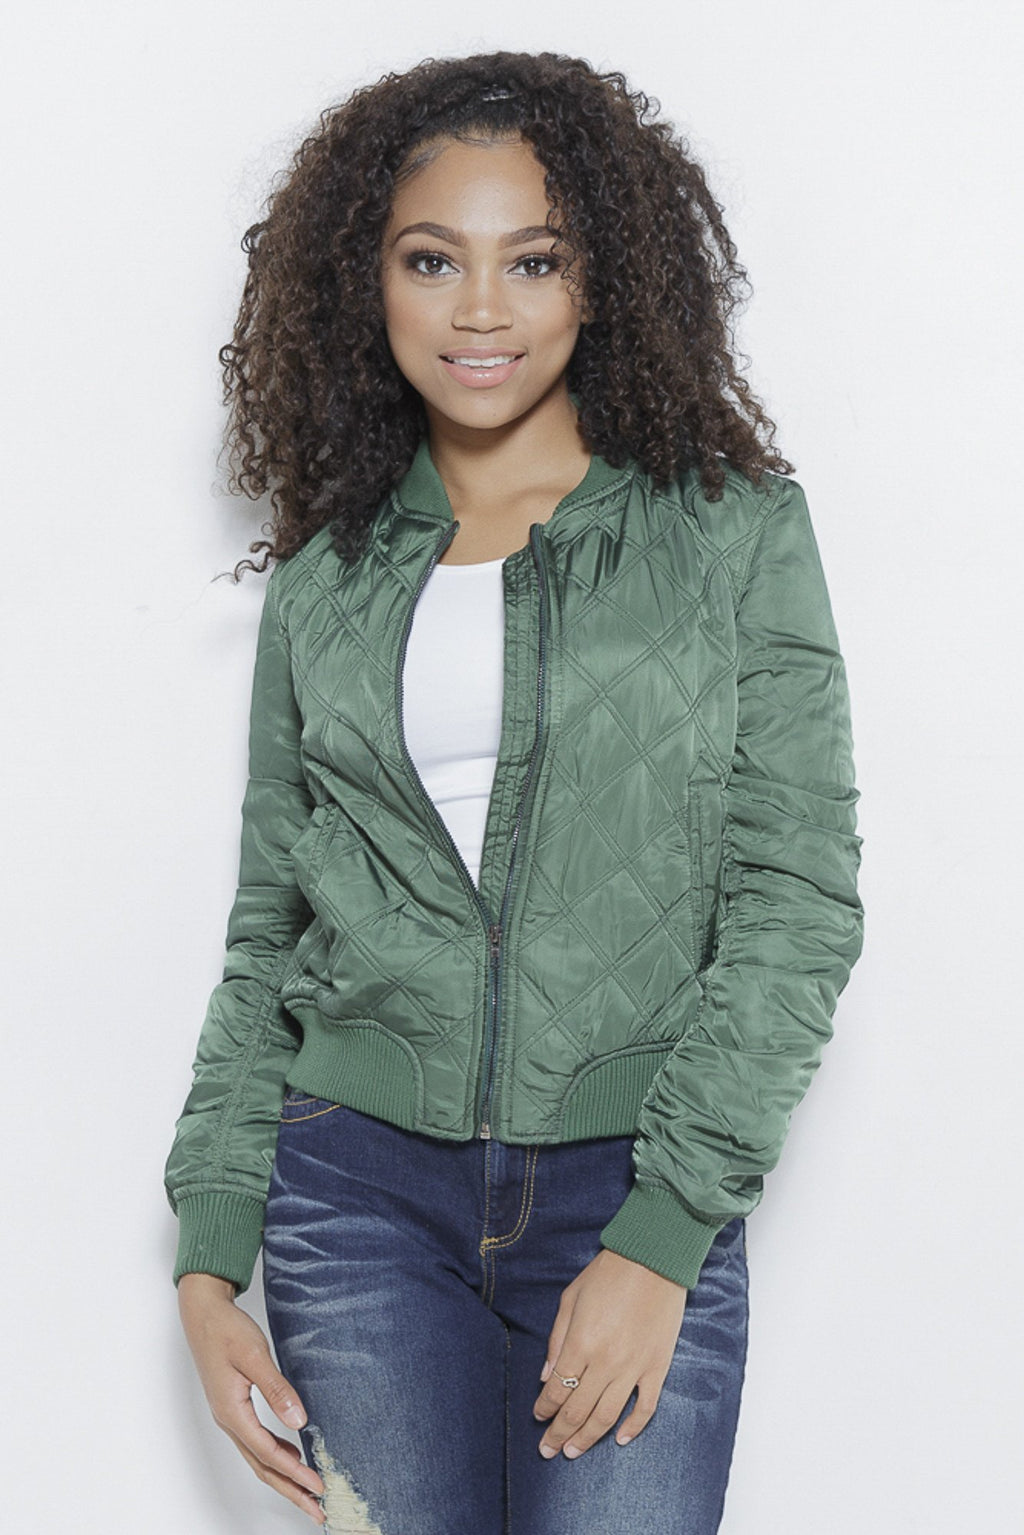 Quilted with Love- Bomber Jacket Clothing Fair Shade S Olive 100% Polyester